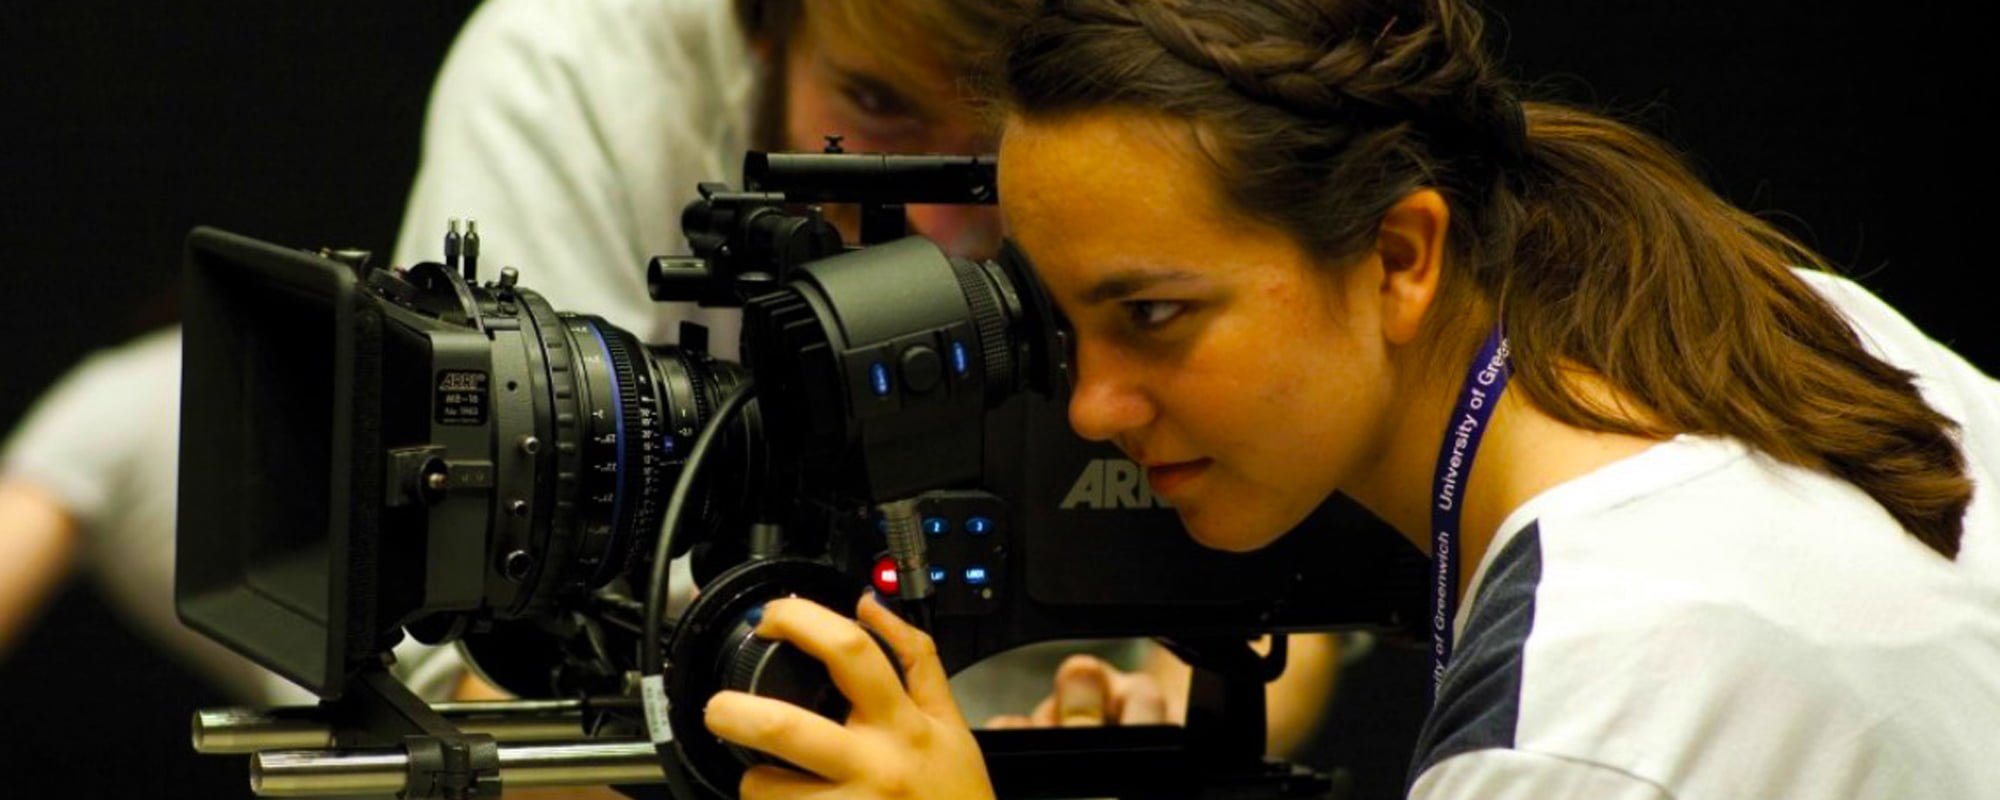 Investment in the International Baccalaureate Career-related Programme has seen students from GEMS Wellington International School secure placements at the University of Greenwich to study film in 2017-18